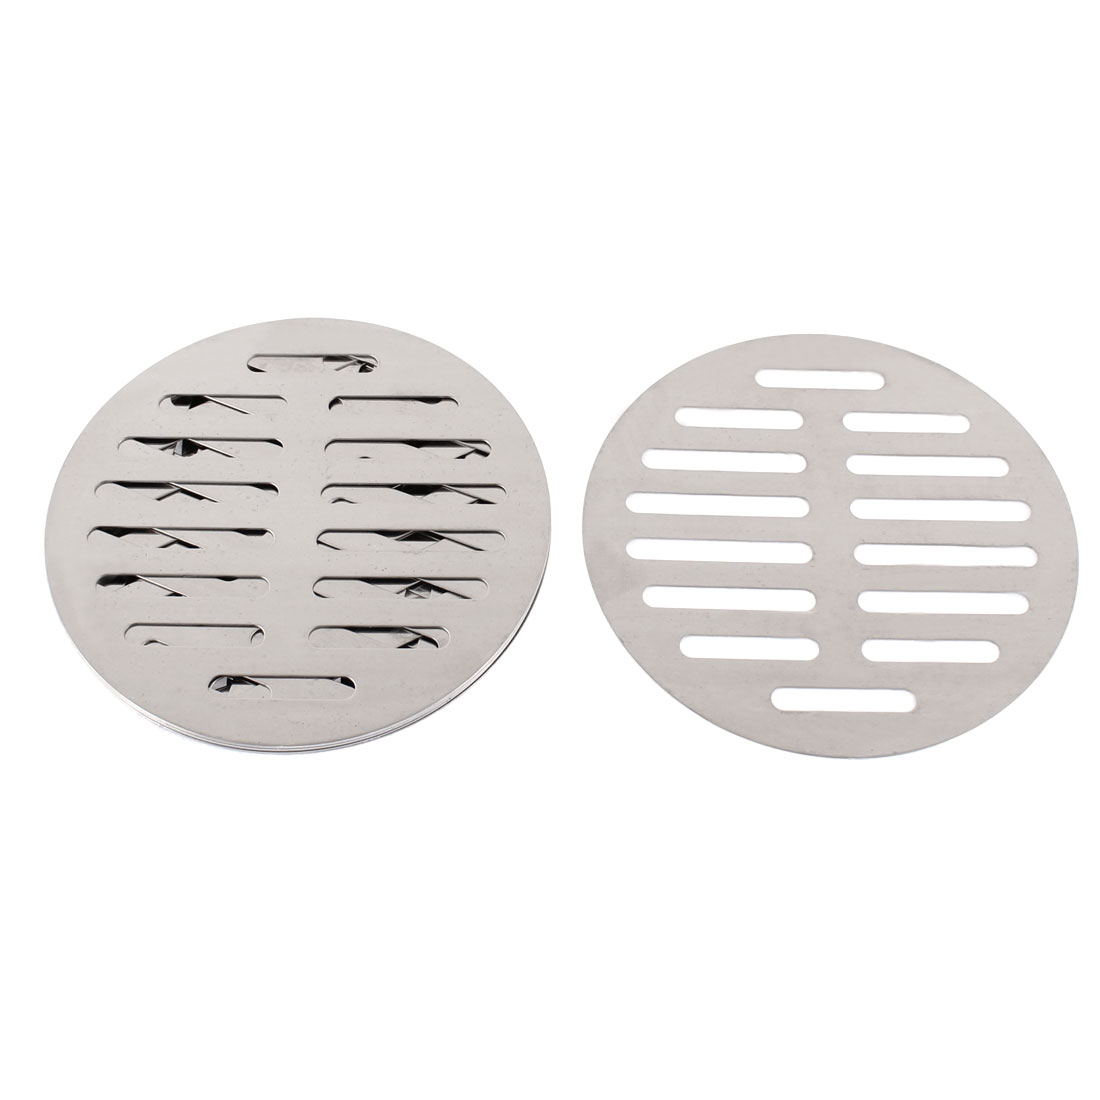 "Kitchen Bathroom Round Floor Drain Drainer Cover 5"" 12.5cm Dia 8Pcs"